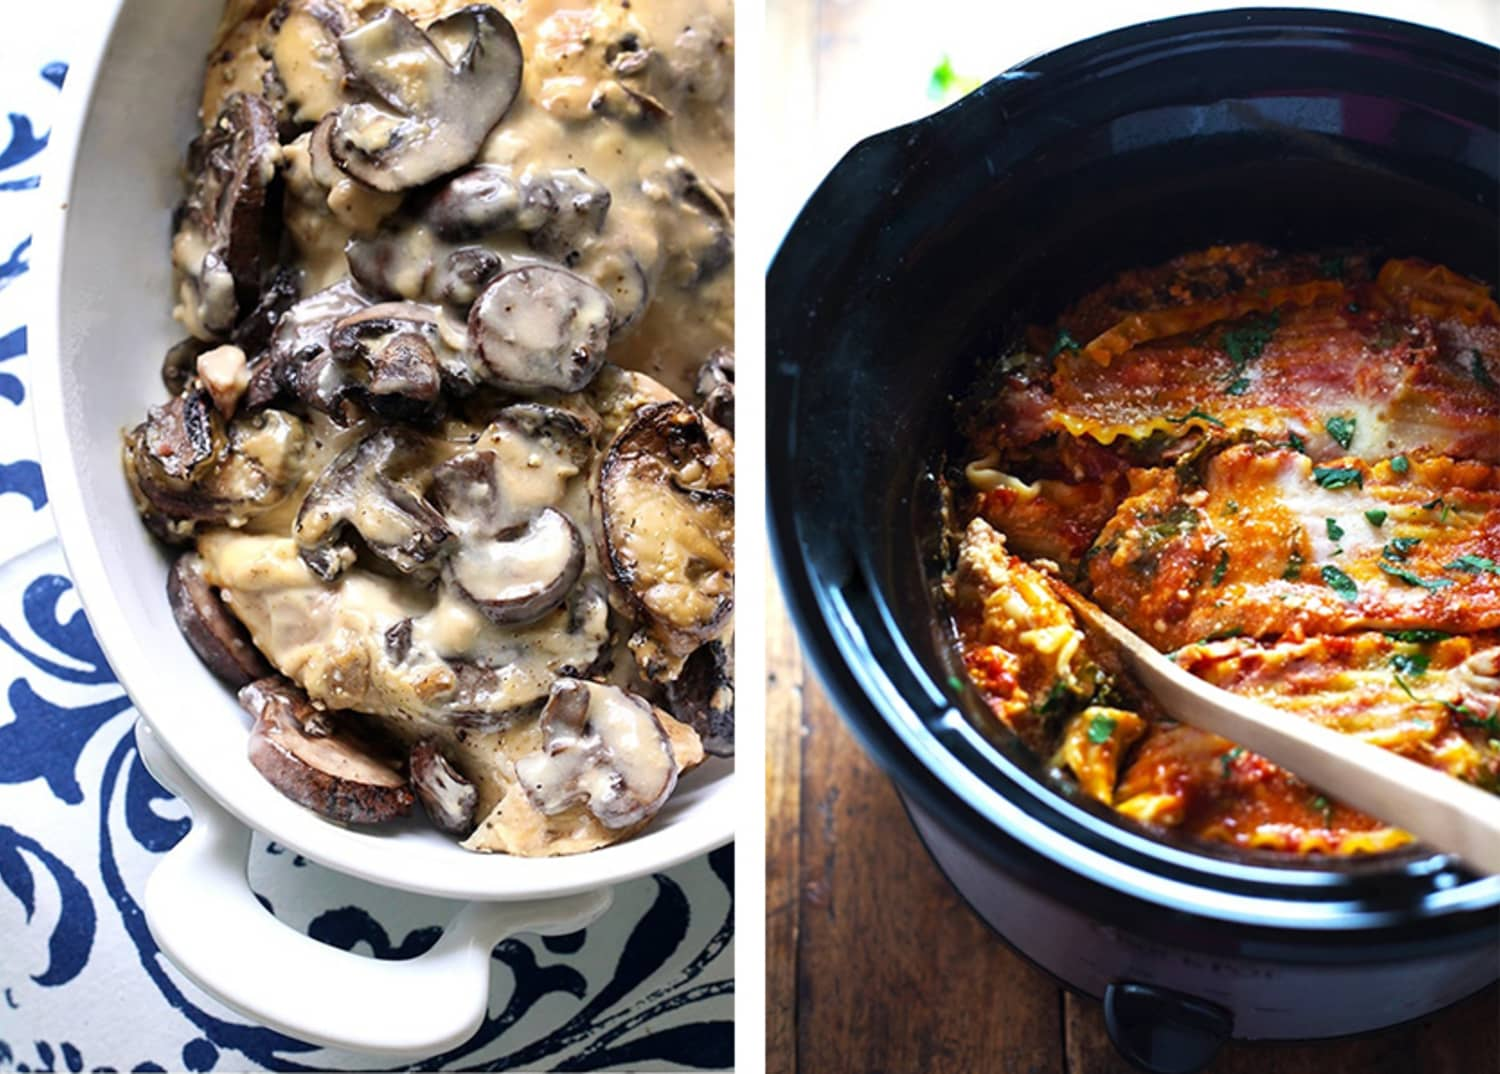 The 10 Most Popular Slow Cooker Recipes on Pinterest